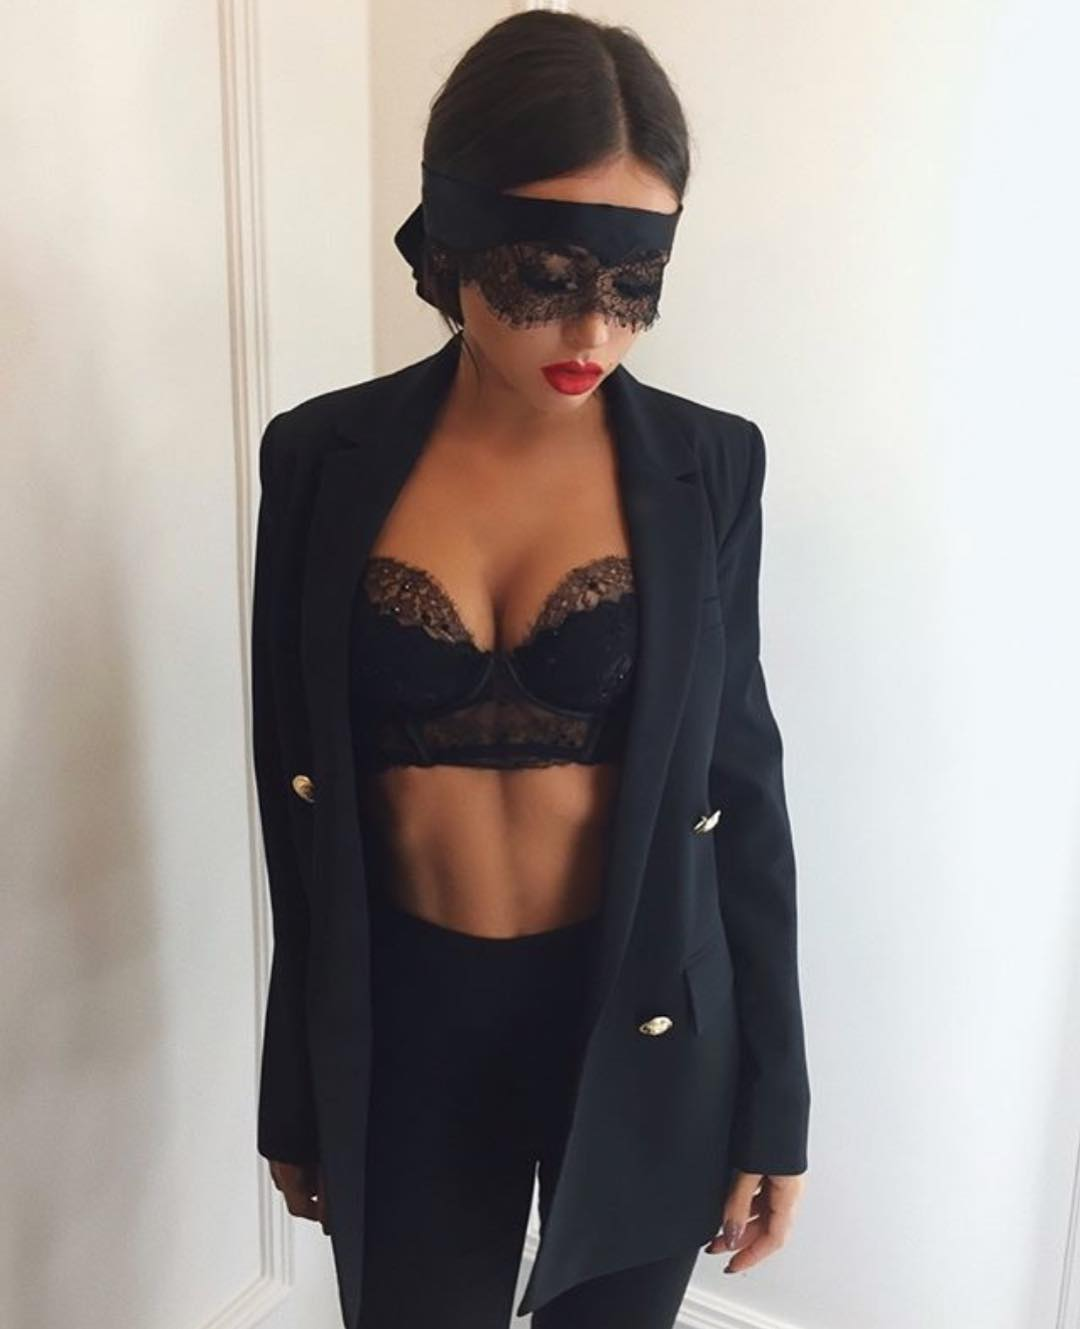 All Black Cocktail Party Outfit: Black Blazer, Lingerie Crop Top And Skinny Pants 2019